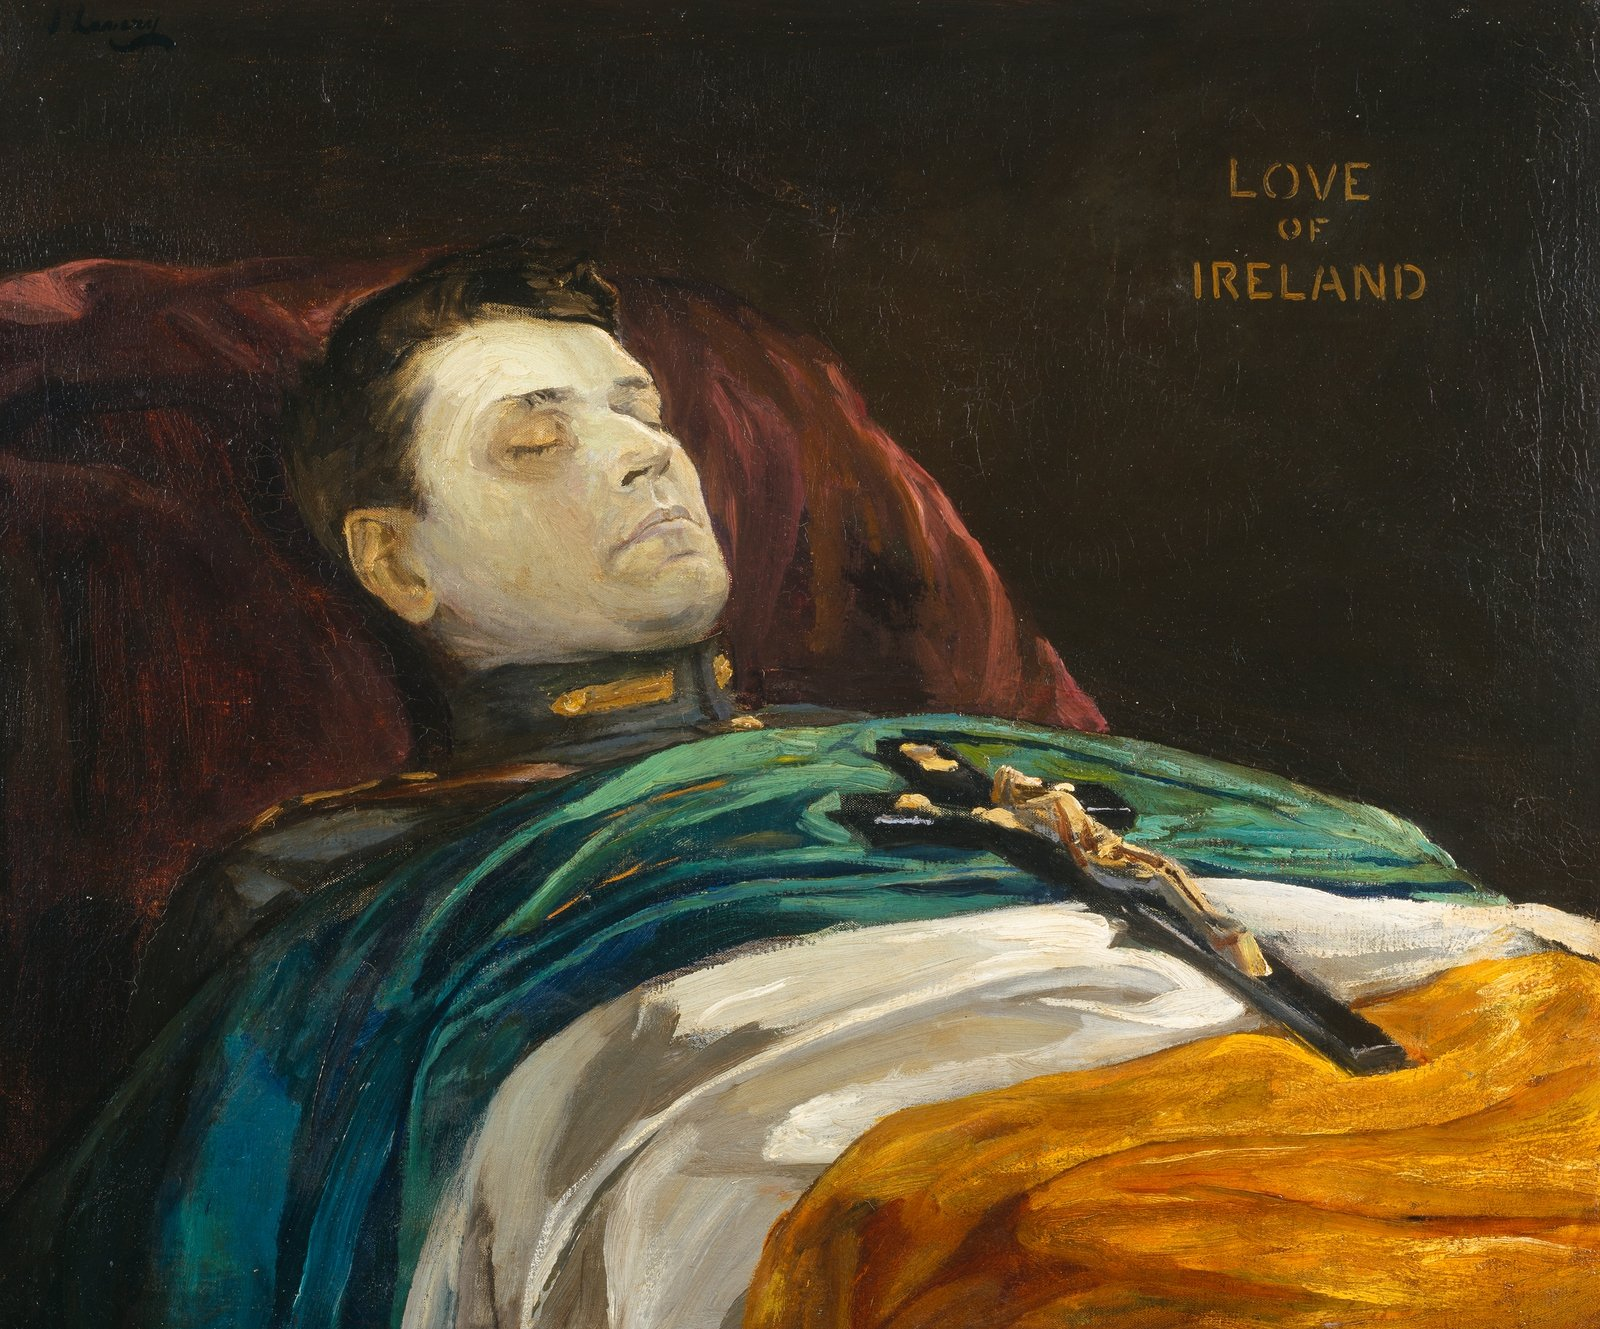 Image - Sir John Lavery's 1922 painting of Michael Collins lying in state, Michael Collins (Love of Ireland).